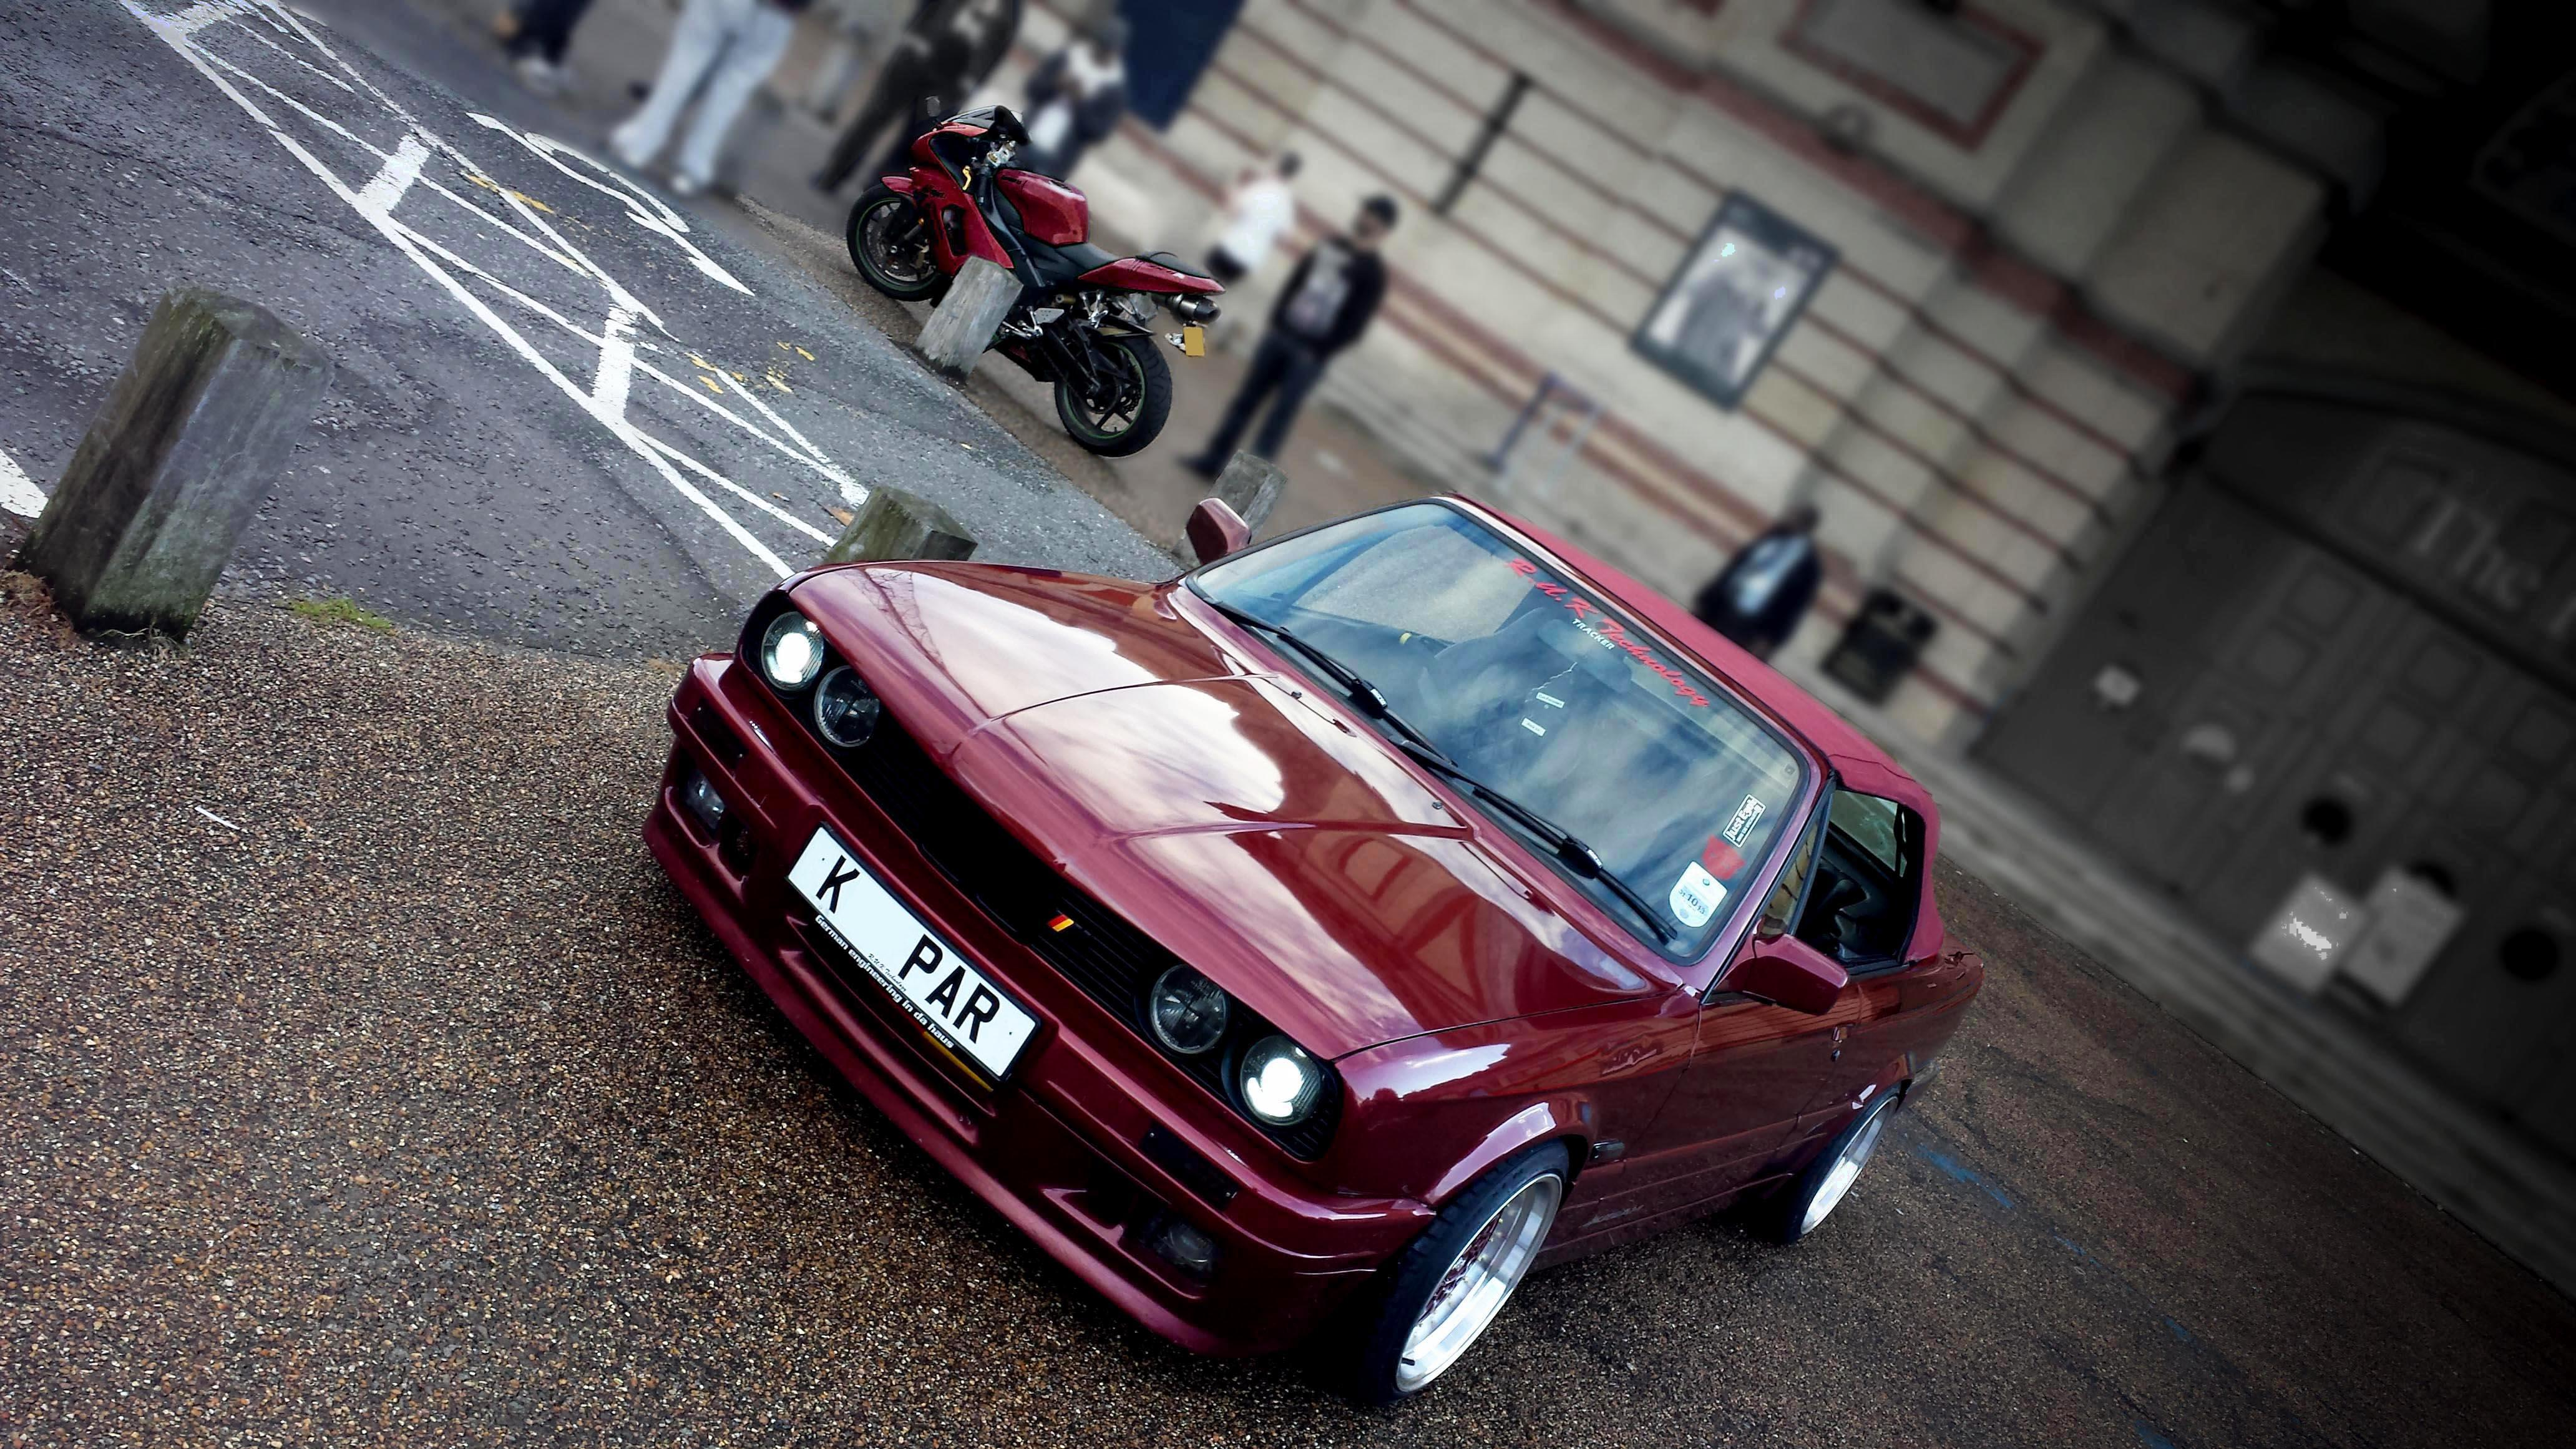 E30 Bmw Calypso Red 524762 Hd Wallpaper Backgrounds Download